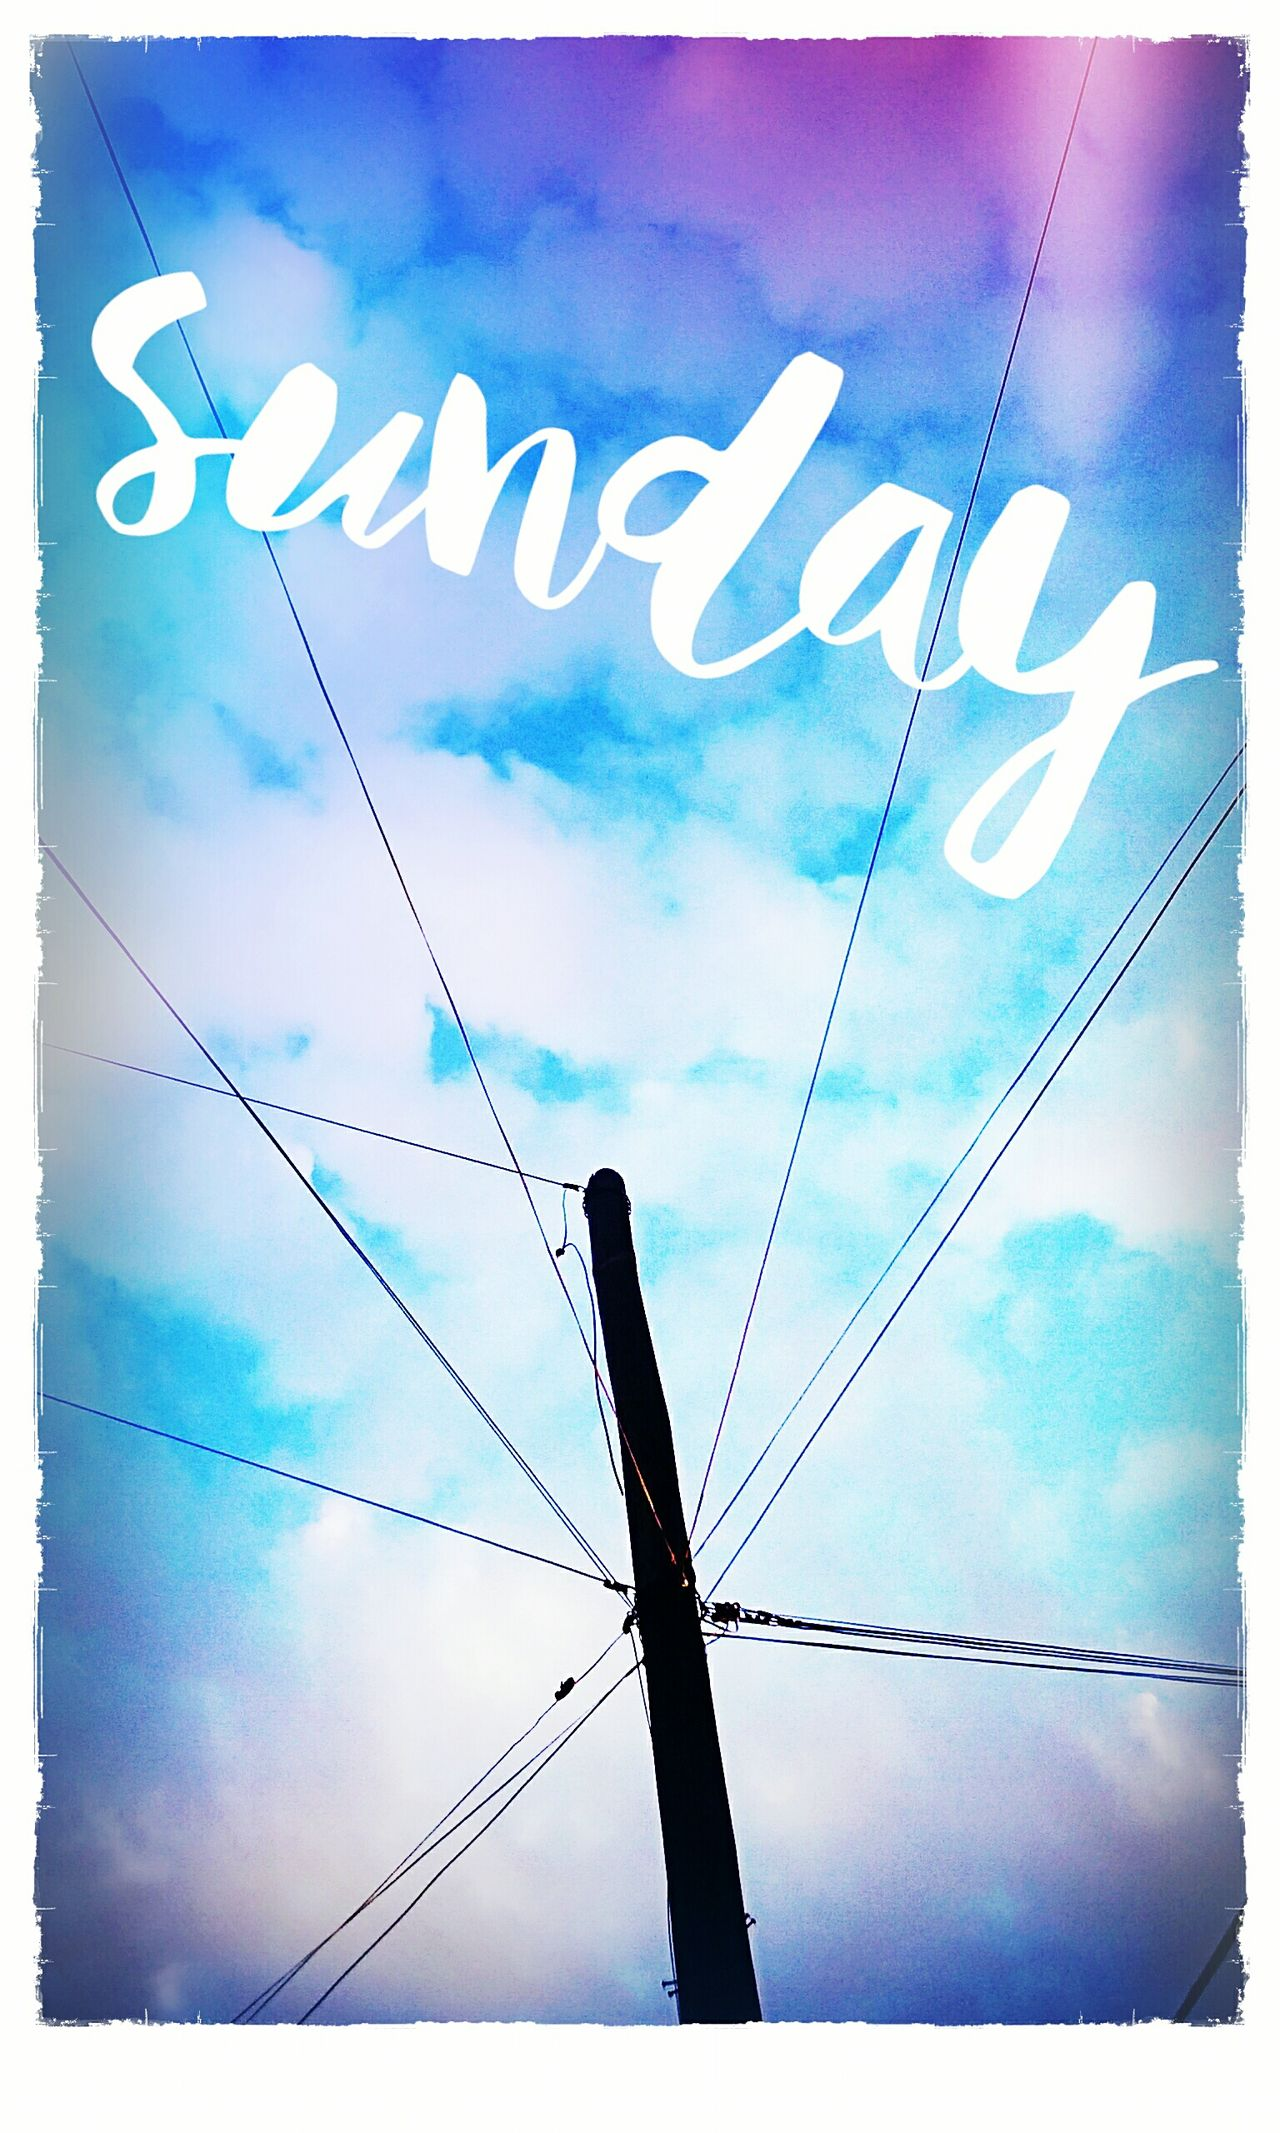 Data Text Communication Technology No People Cloud - Sky Sky Internet Outdoors Close-up Day Sunday Sundaymorning Filterphotography Filters